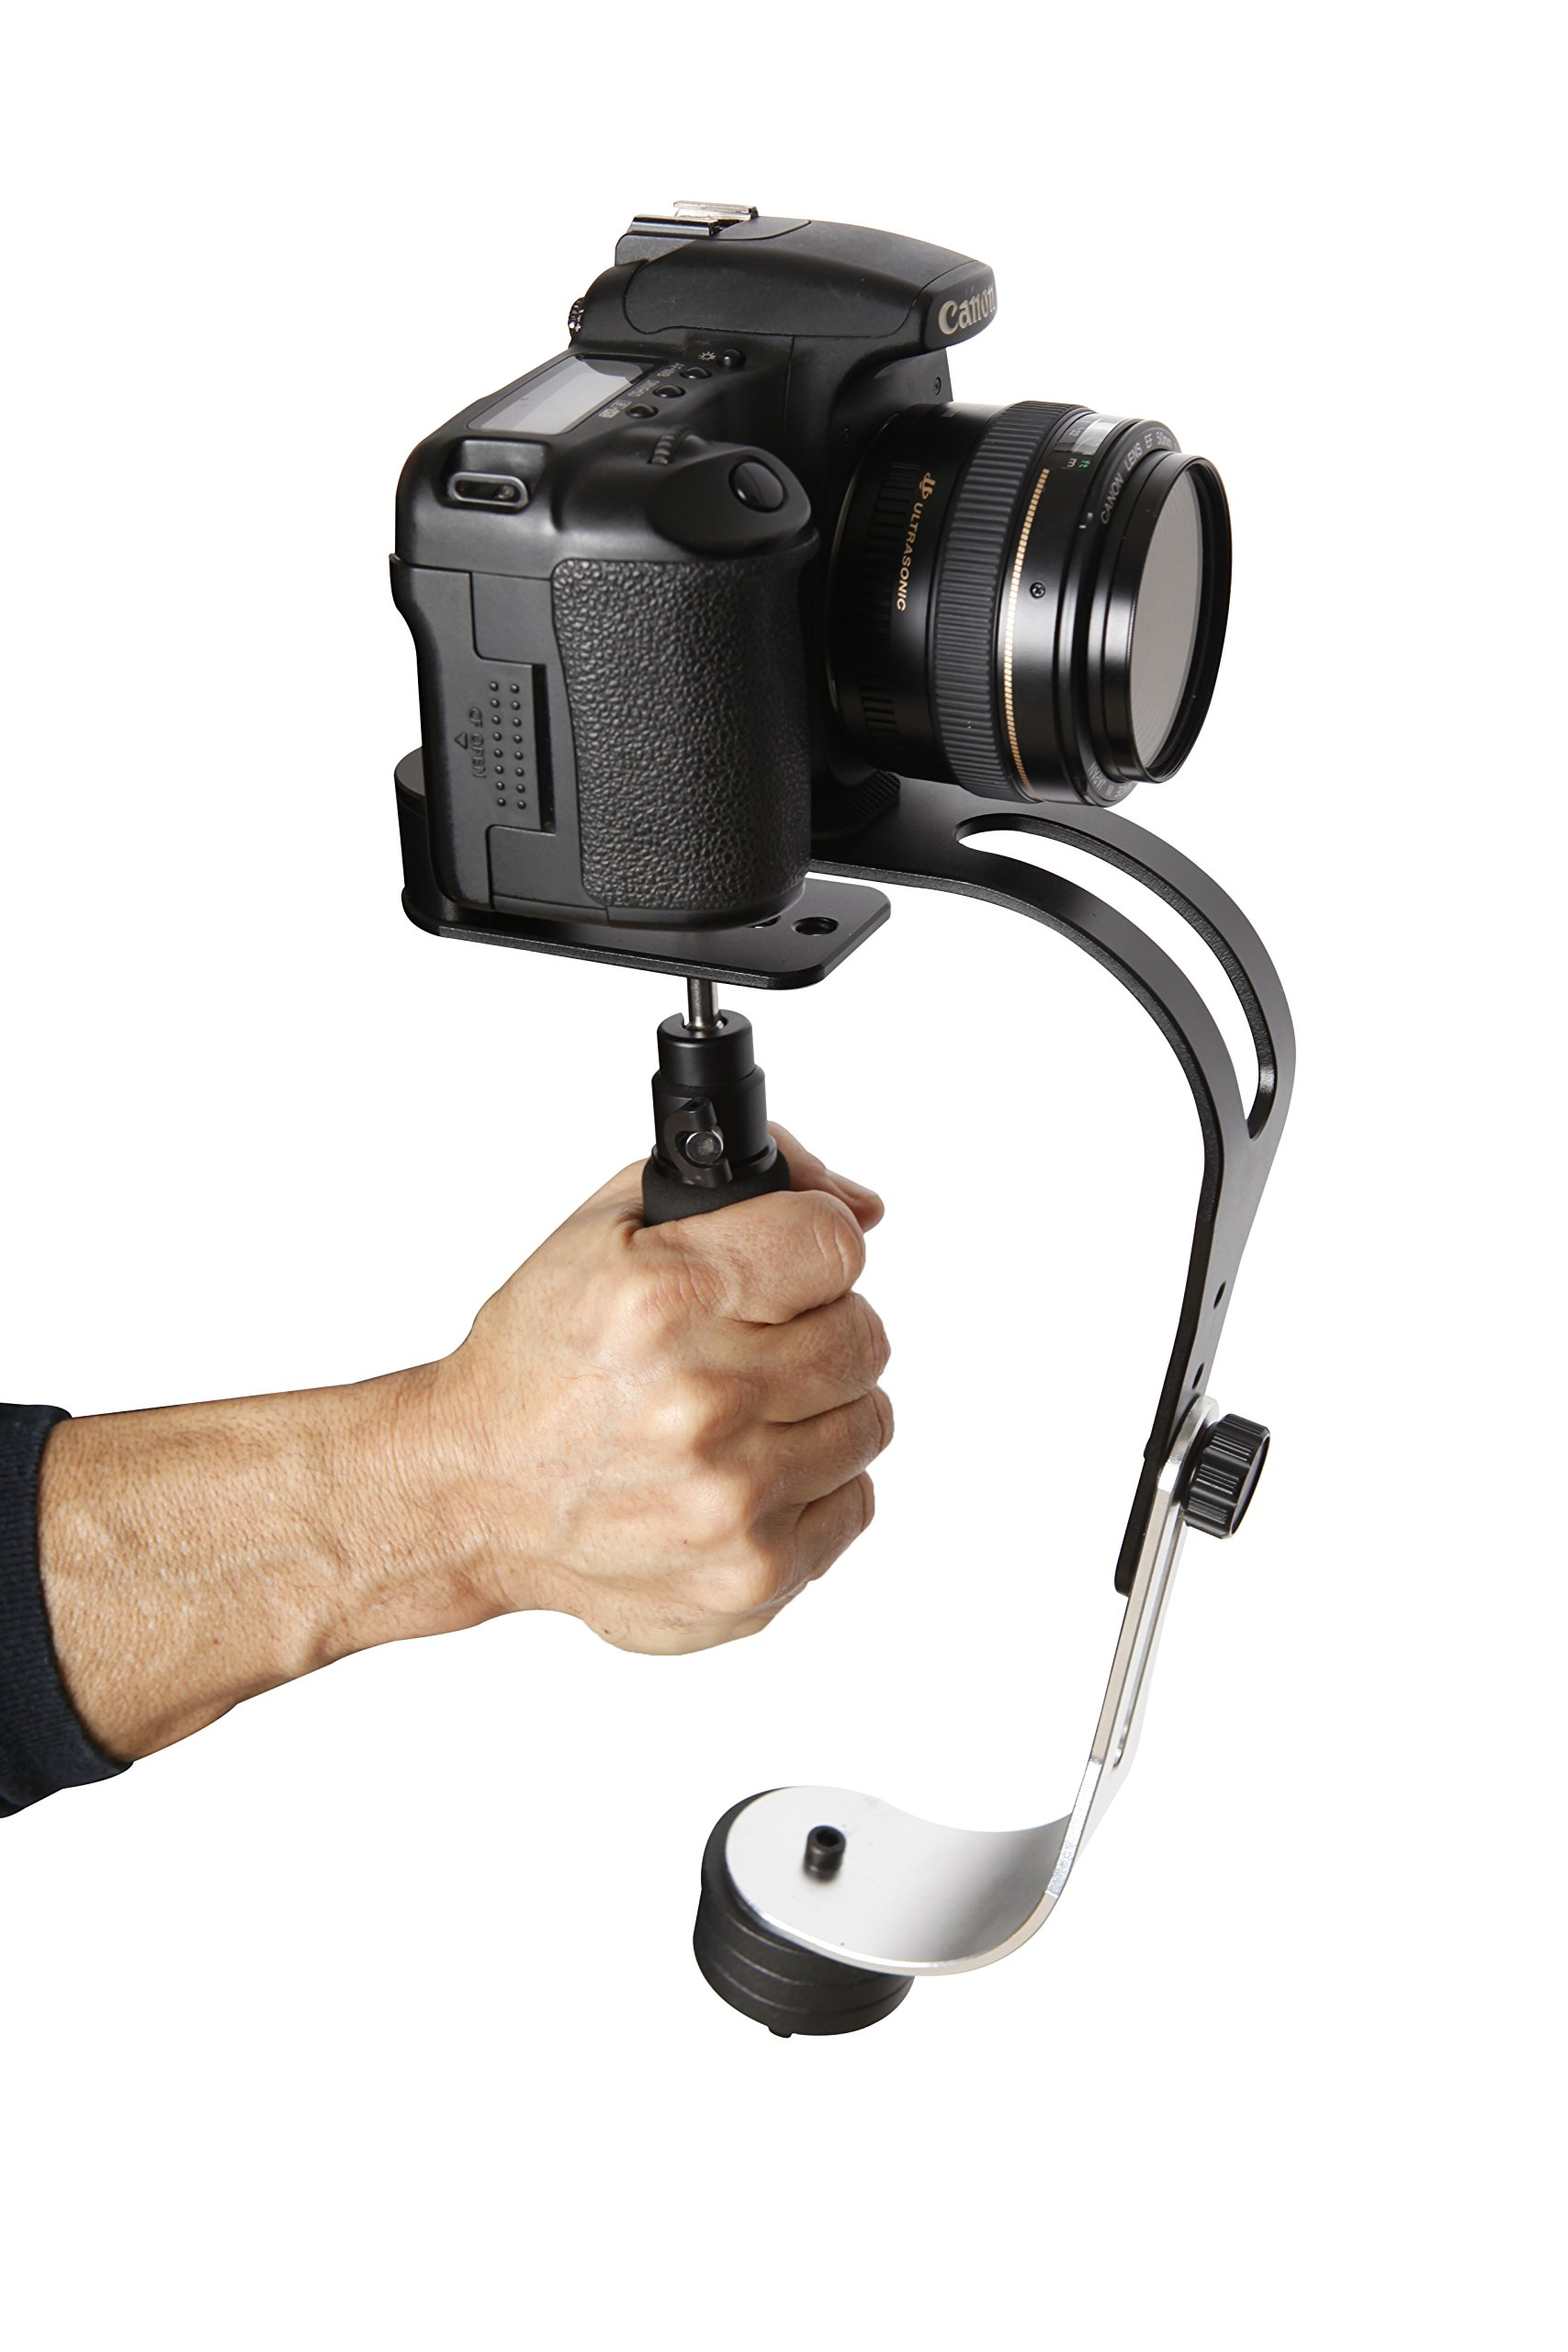 The Official Roxant Pro Video Camera Stabilizer Limited Edition (Midnight Black) with Low Profile Handle for GoPro, Smartphone, Canon, Nikon - or Any Camera up to 2.1 lbs. - Comes with Phone Clamp. by Roxant